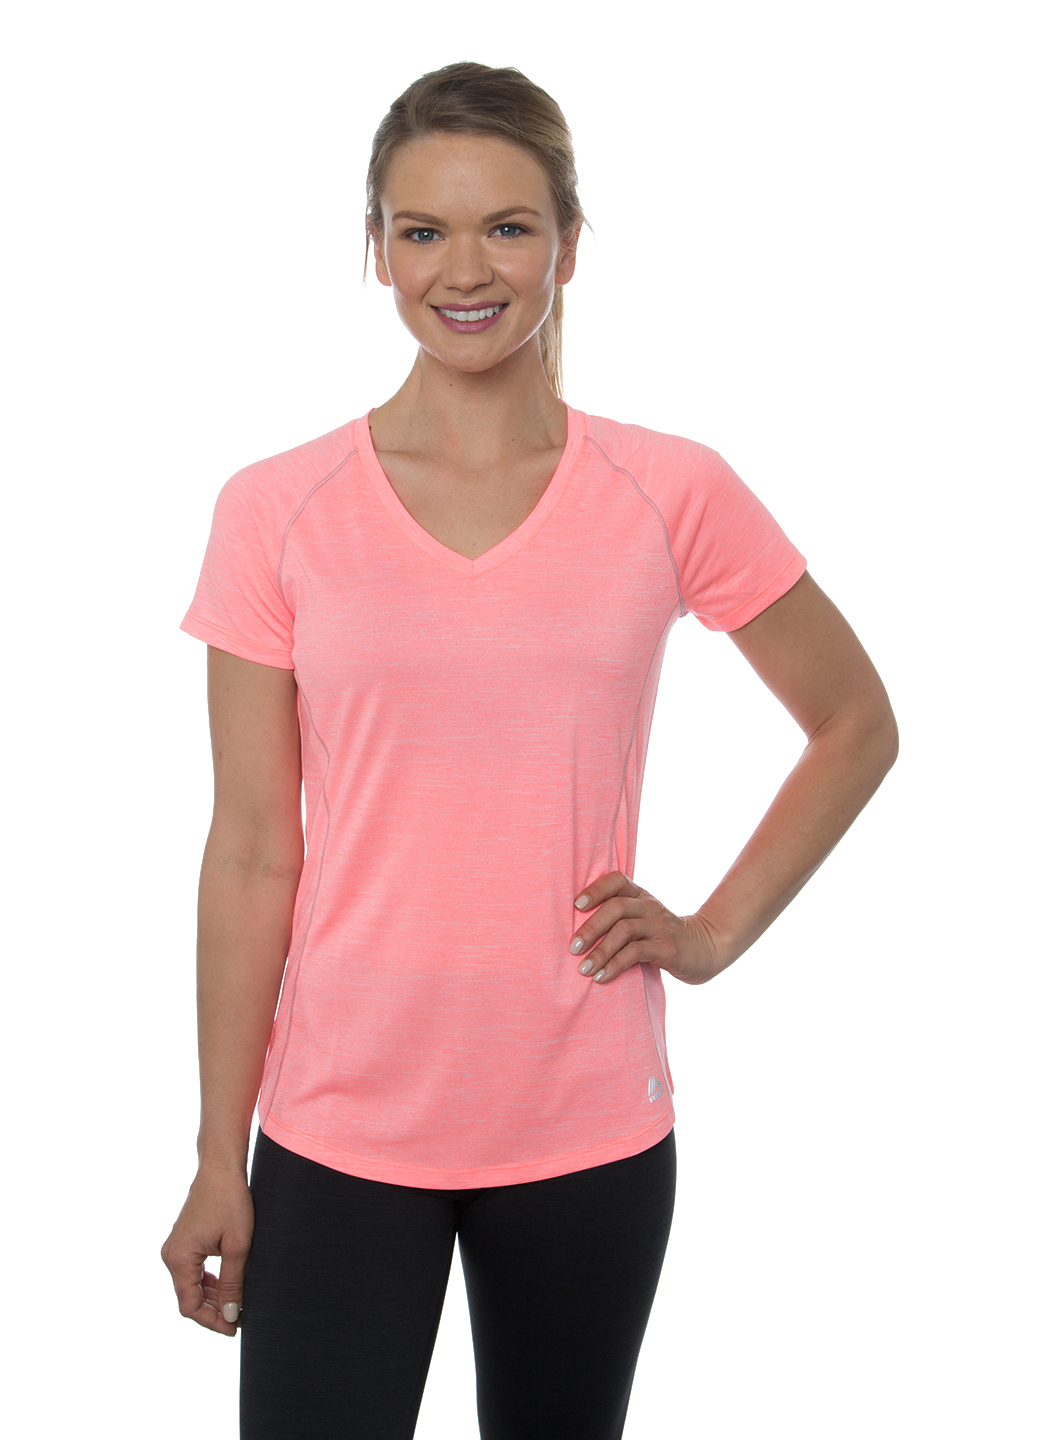 RBX Active Stratus Heathered Space Dye Short Sleeve V-Neck Tee